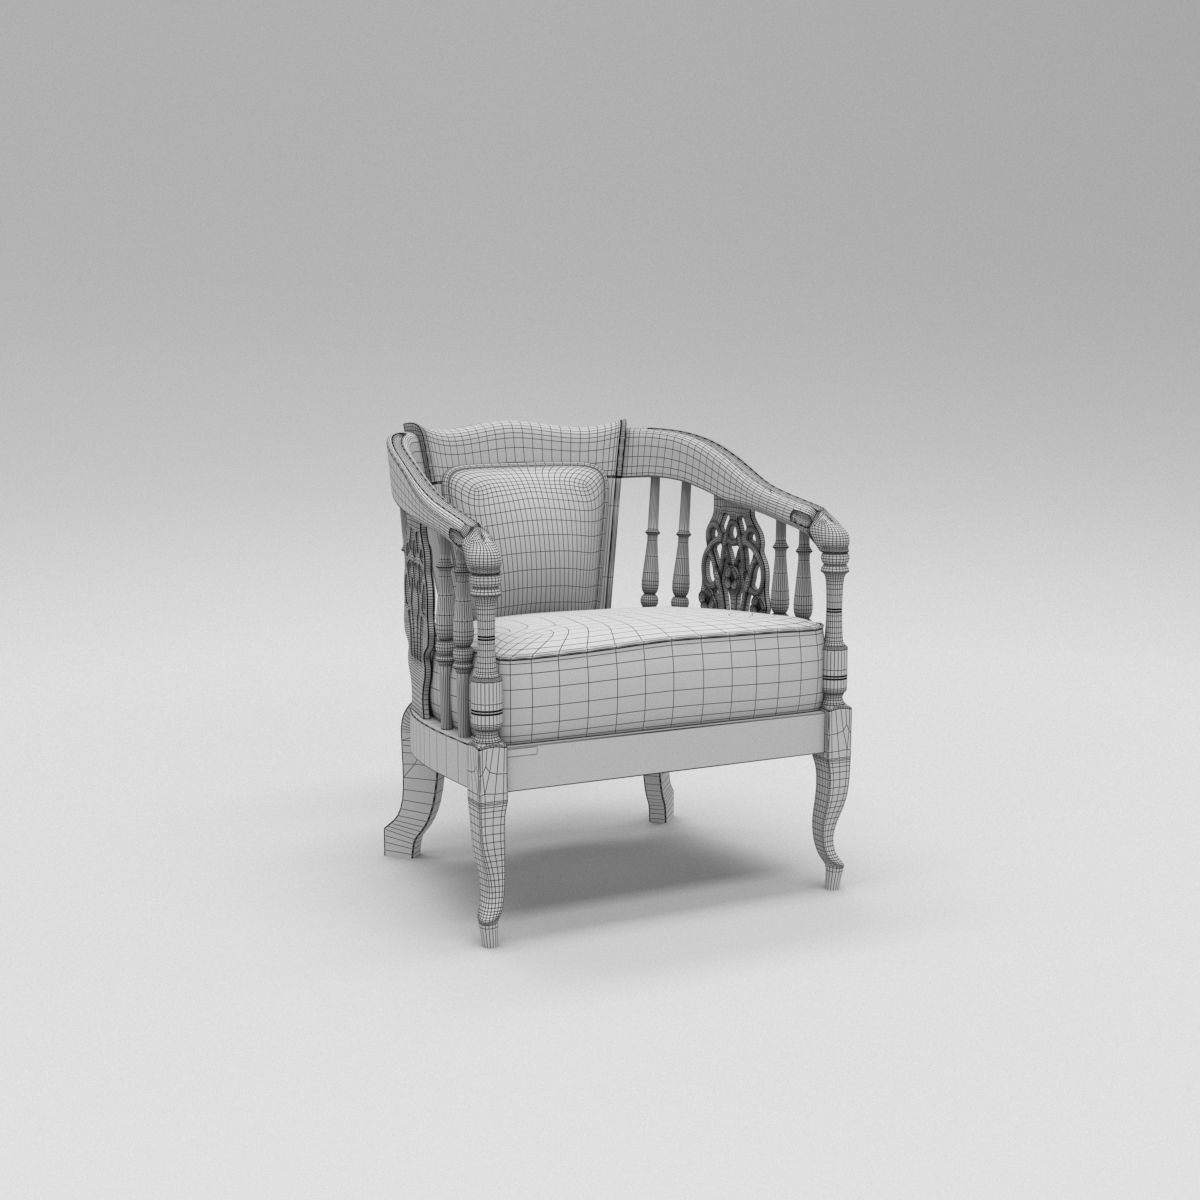 El Marissa Sofa 3D Model | Cgtrader Intended For Marissa Sofa Chairs (View 20 of 25)